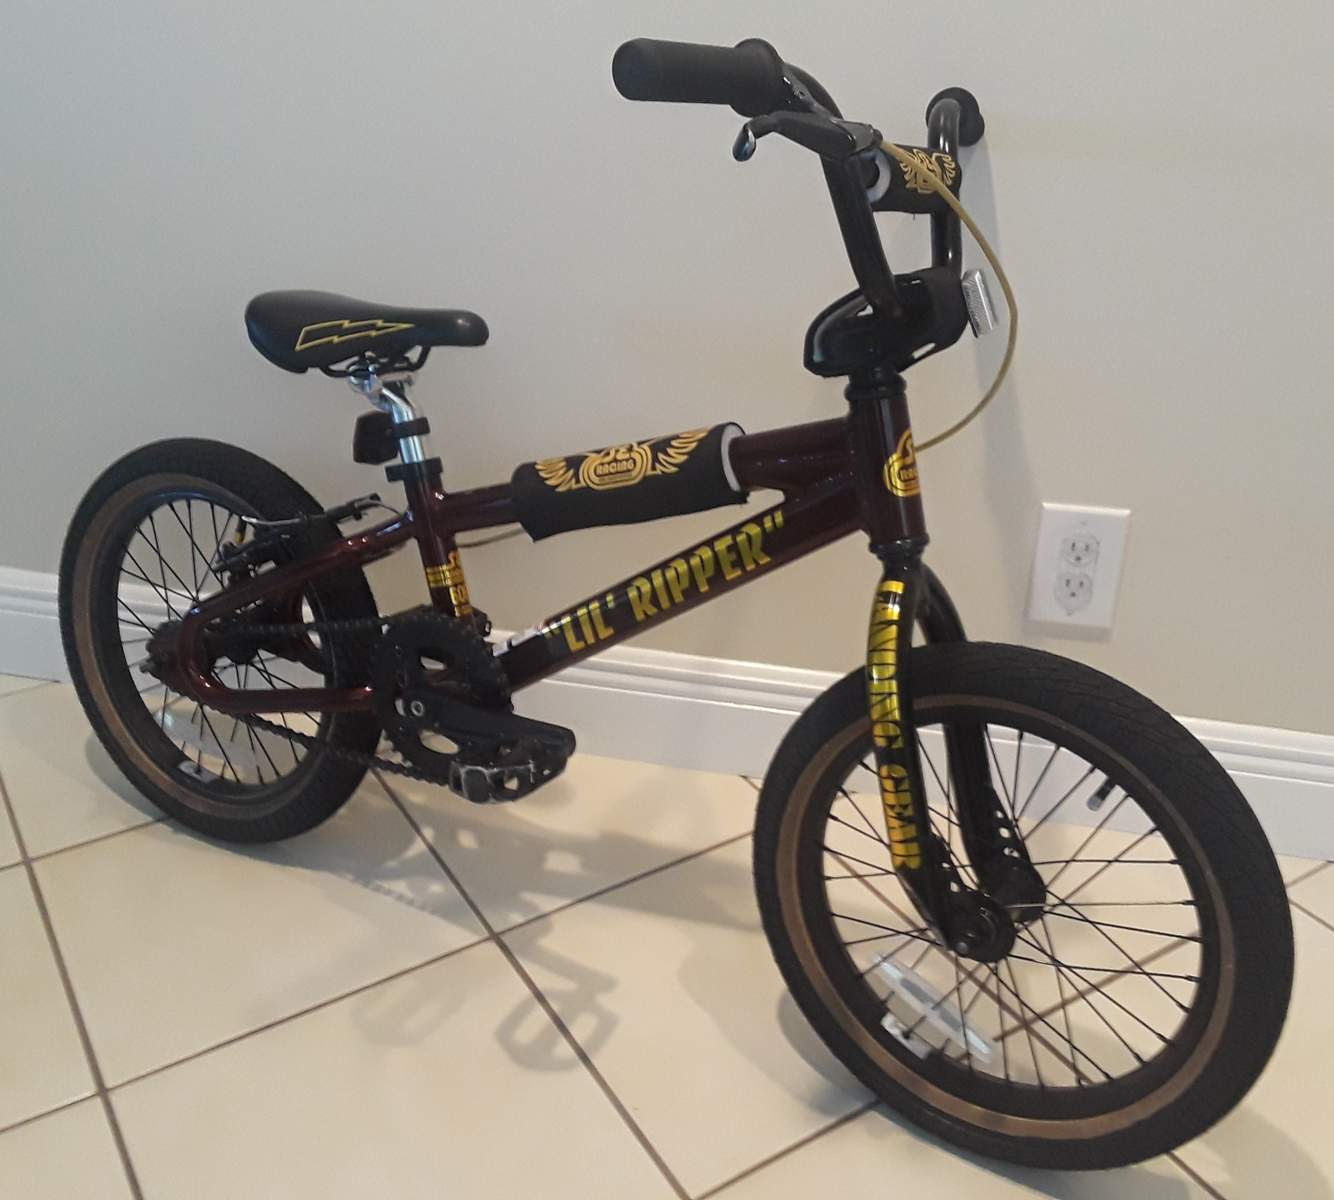 http://uploads.bmxmuseum.com/user-images/28501/20181230_1326405c2910e989.jpg